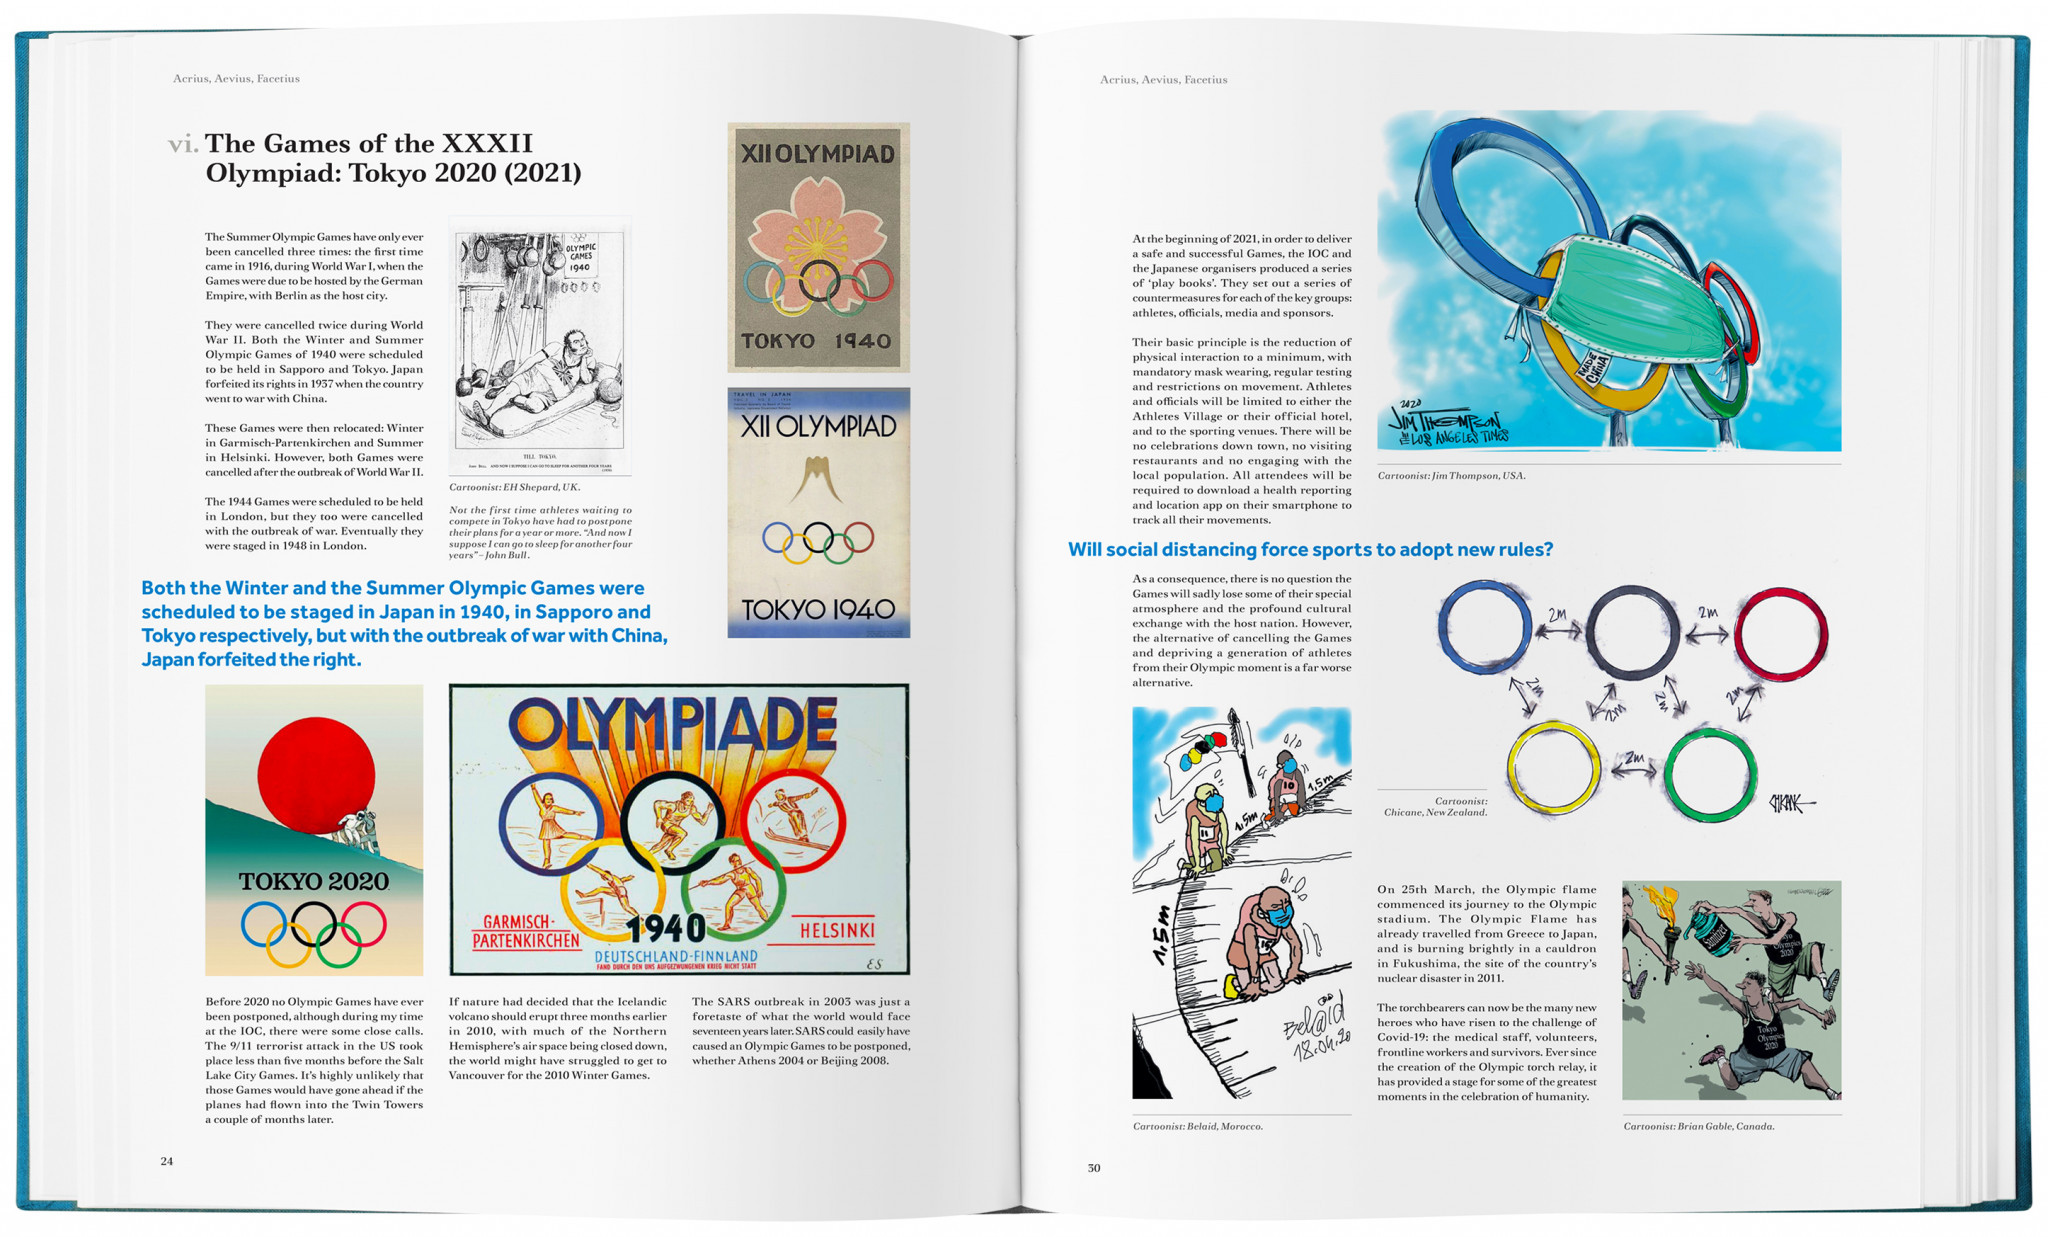 The book features a spread dedicated to Tokyo 2020 ©olympiccartoon.com